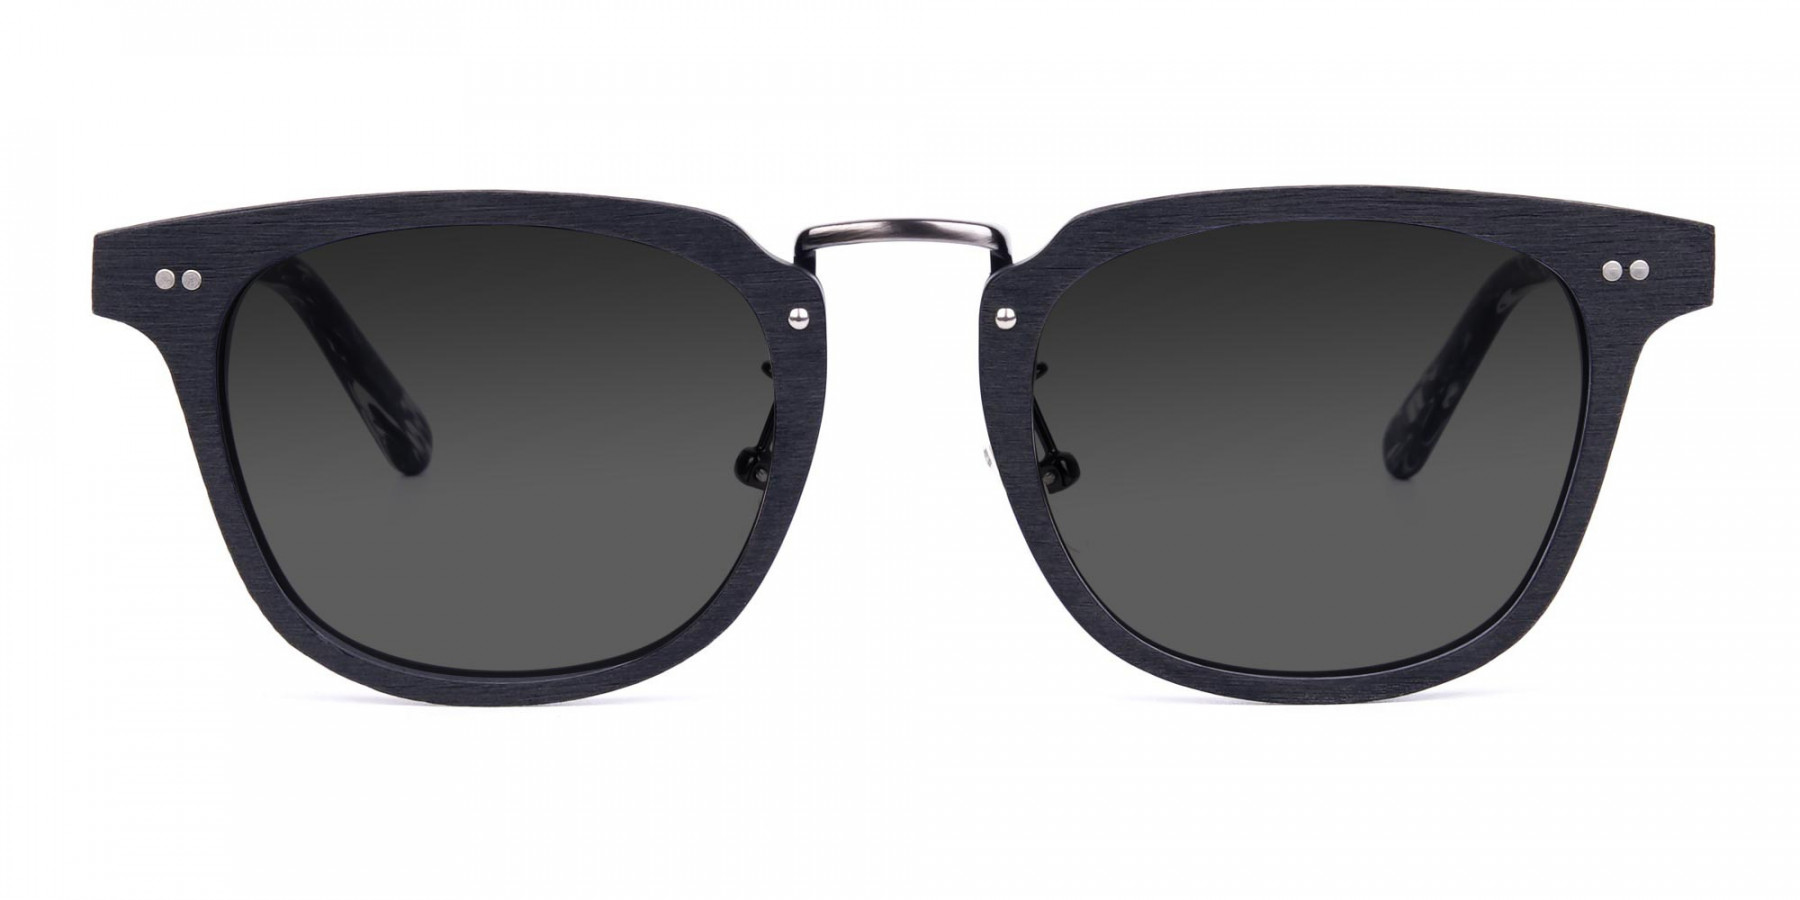 Wooden-Black-Square-Frame-Sunglasses-with-Green-Tint-3